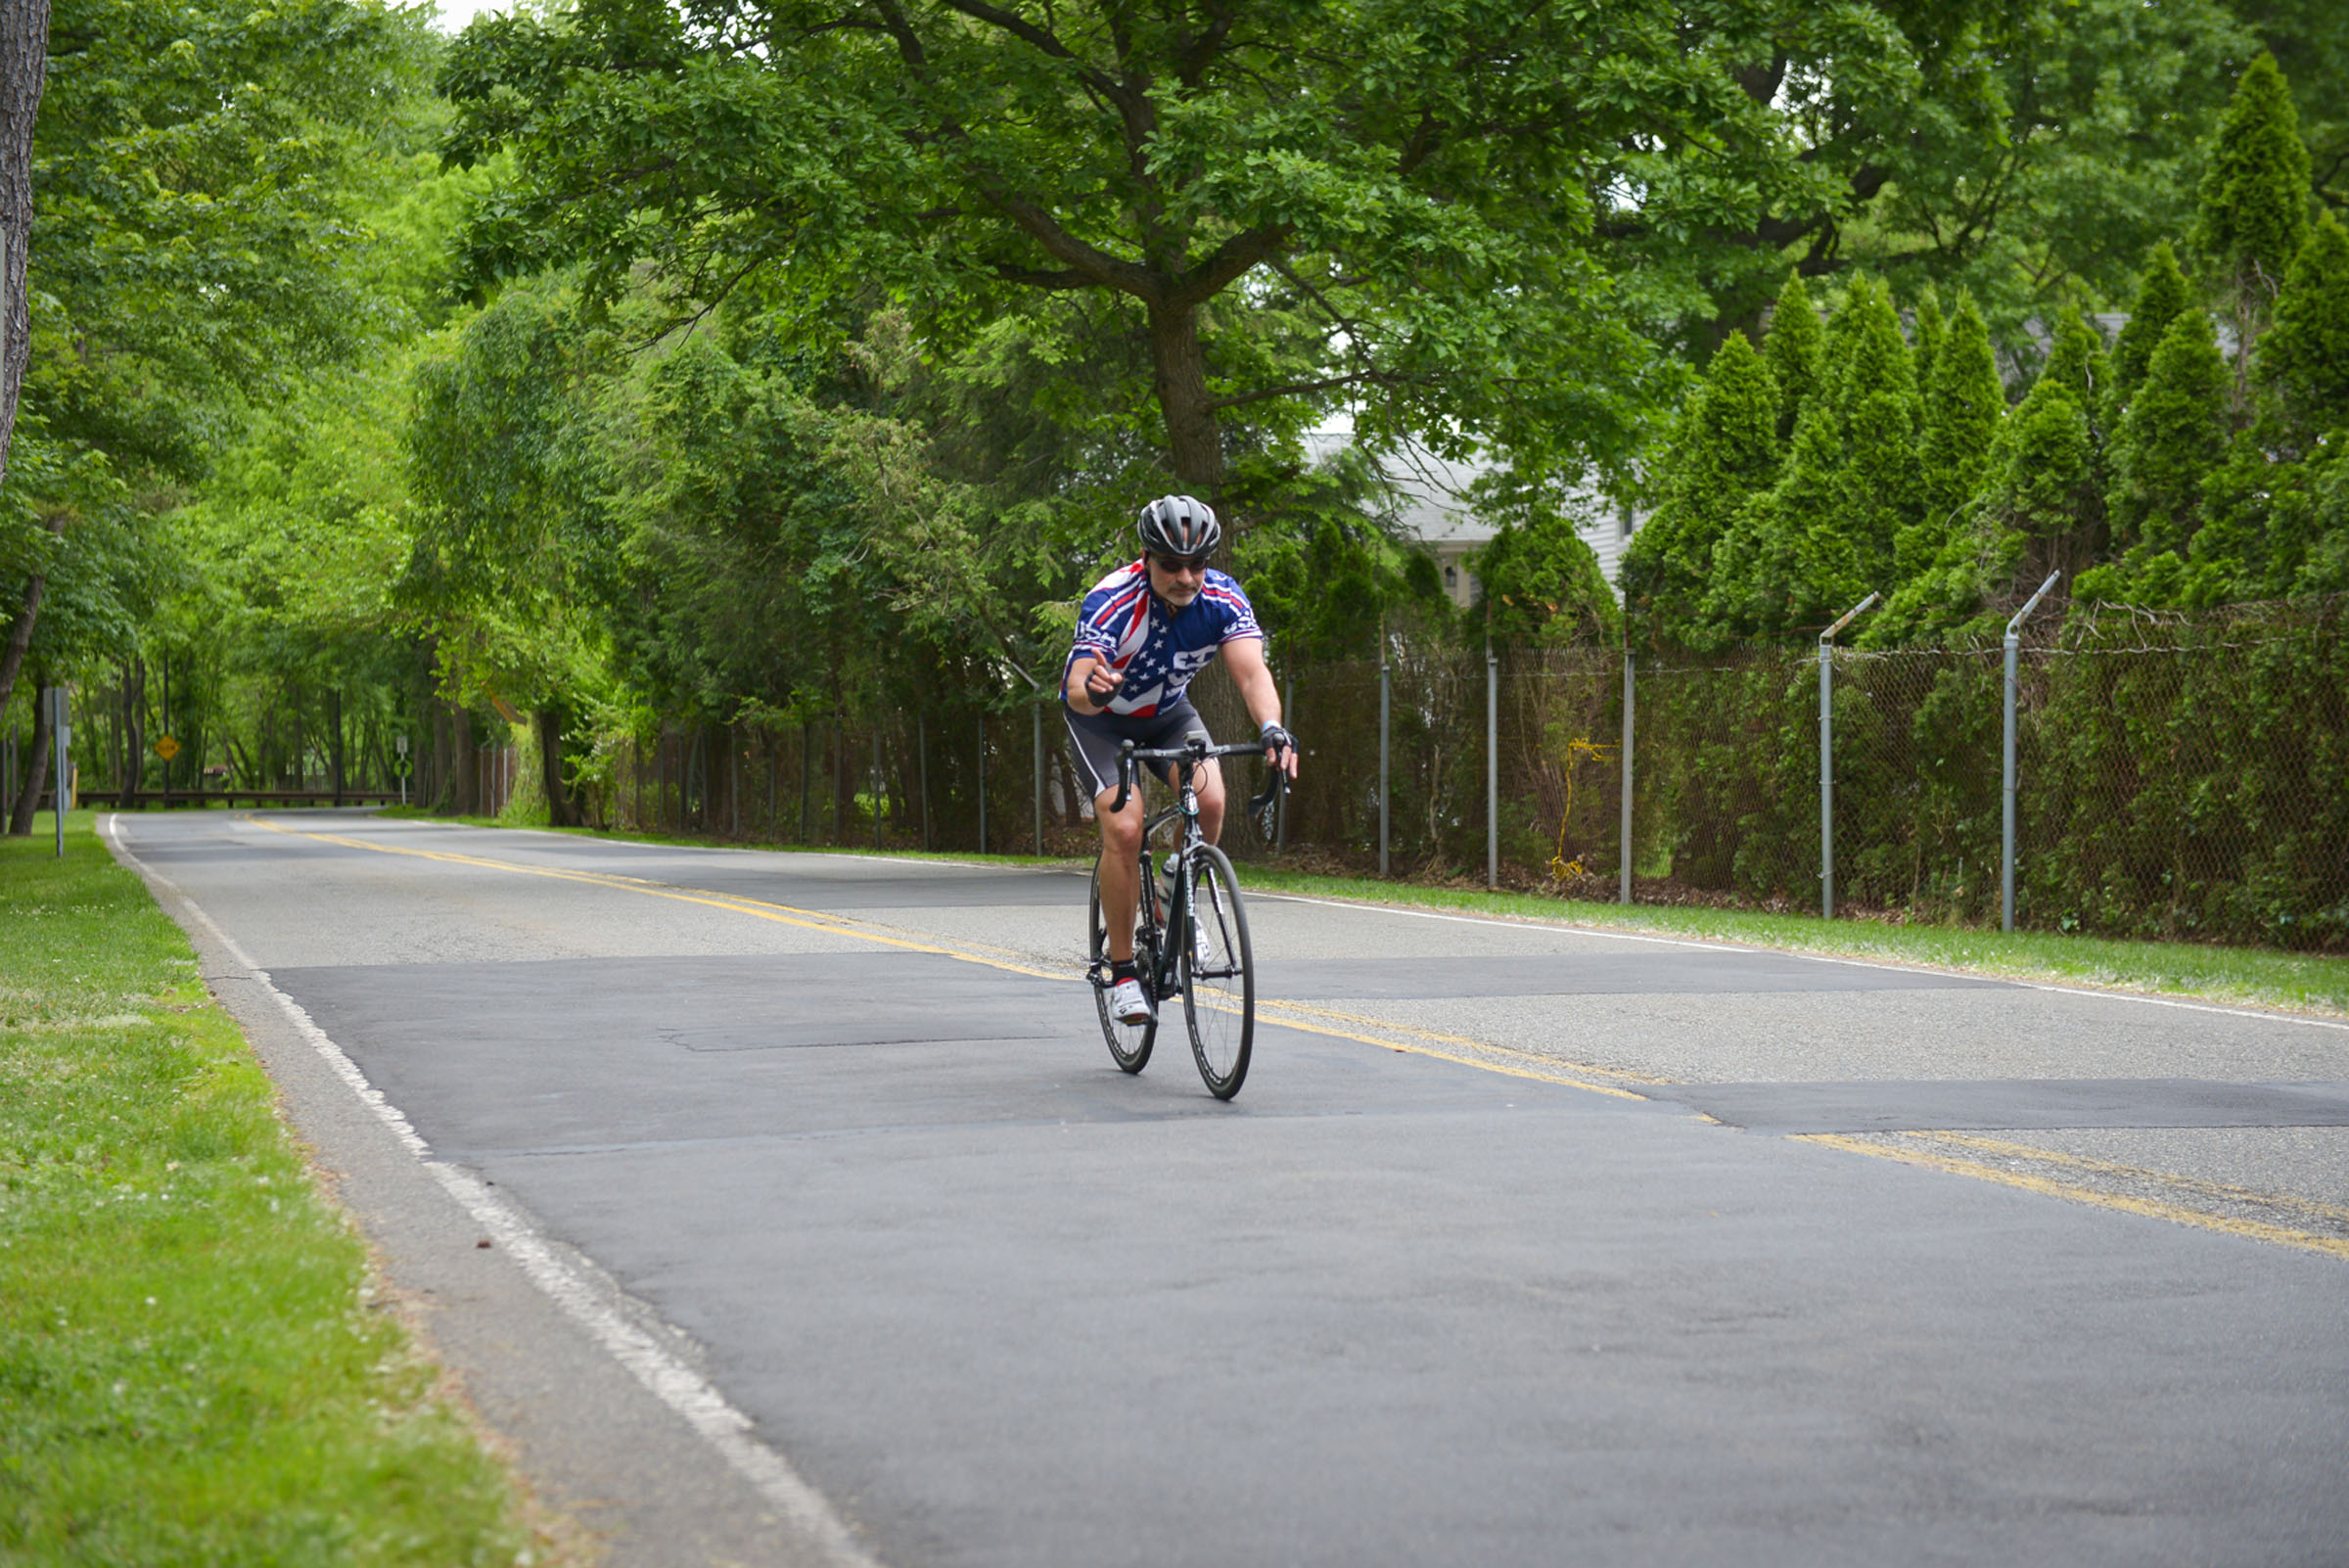 2017-06-04 GTD4A Charity Bike Ride - BCC - Paramus NJ-2278.jpg